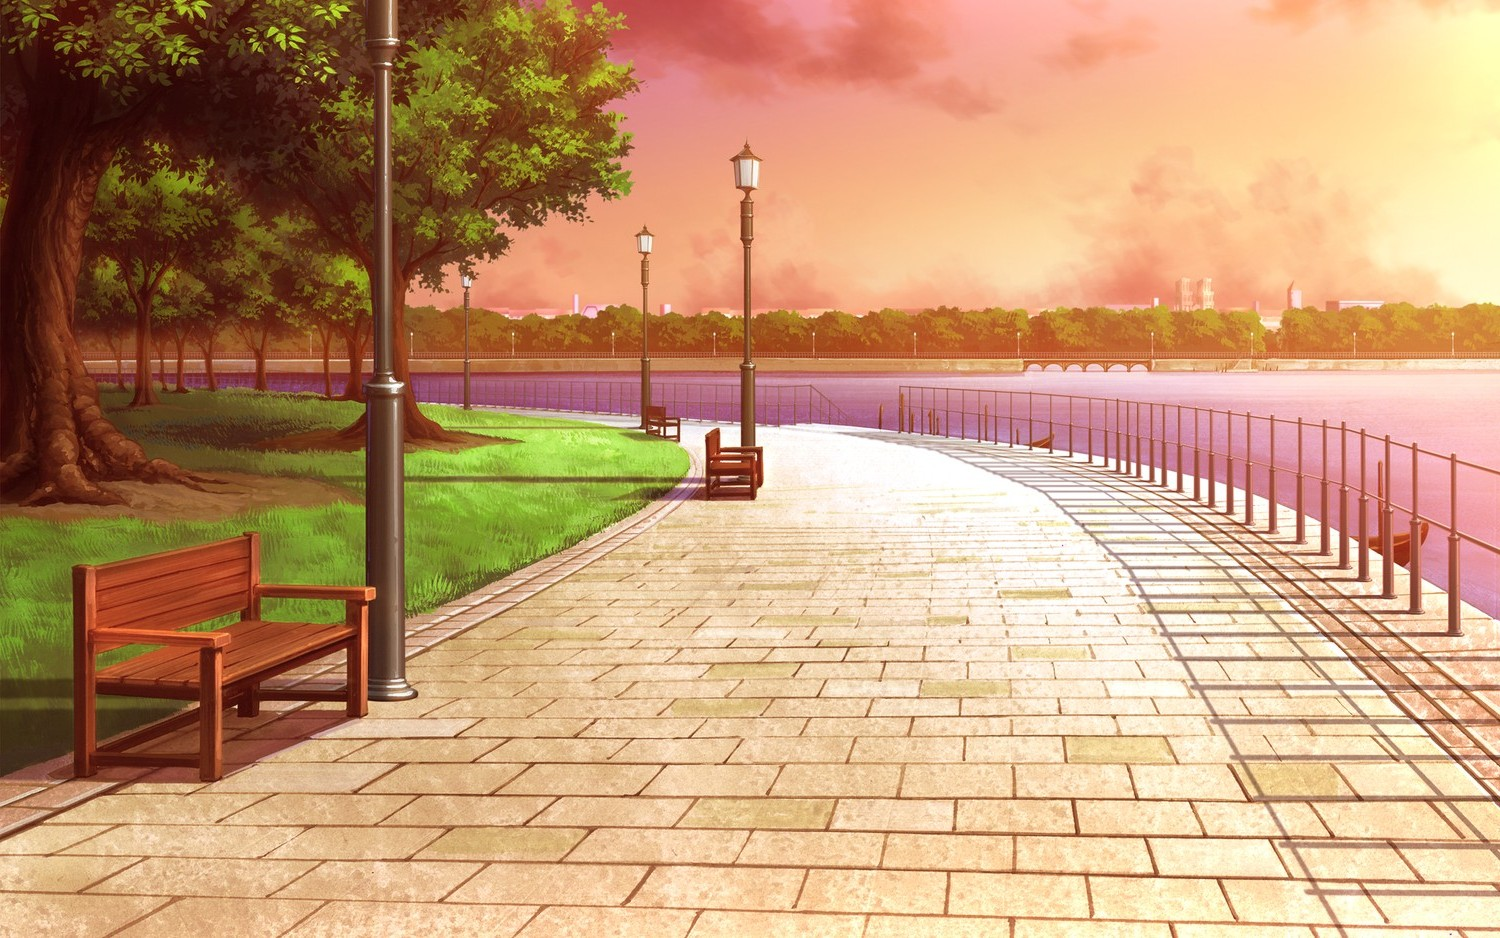 3d Wallpapers For Spring City River Trees Bench Street Light Wallpapers Hd